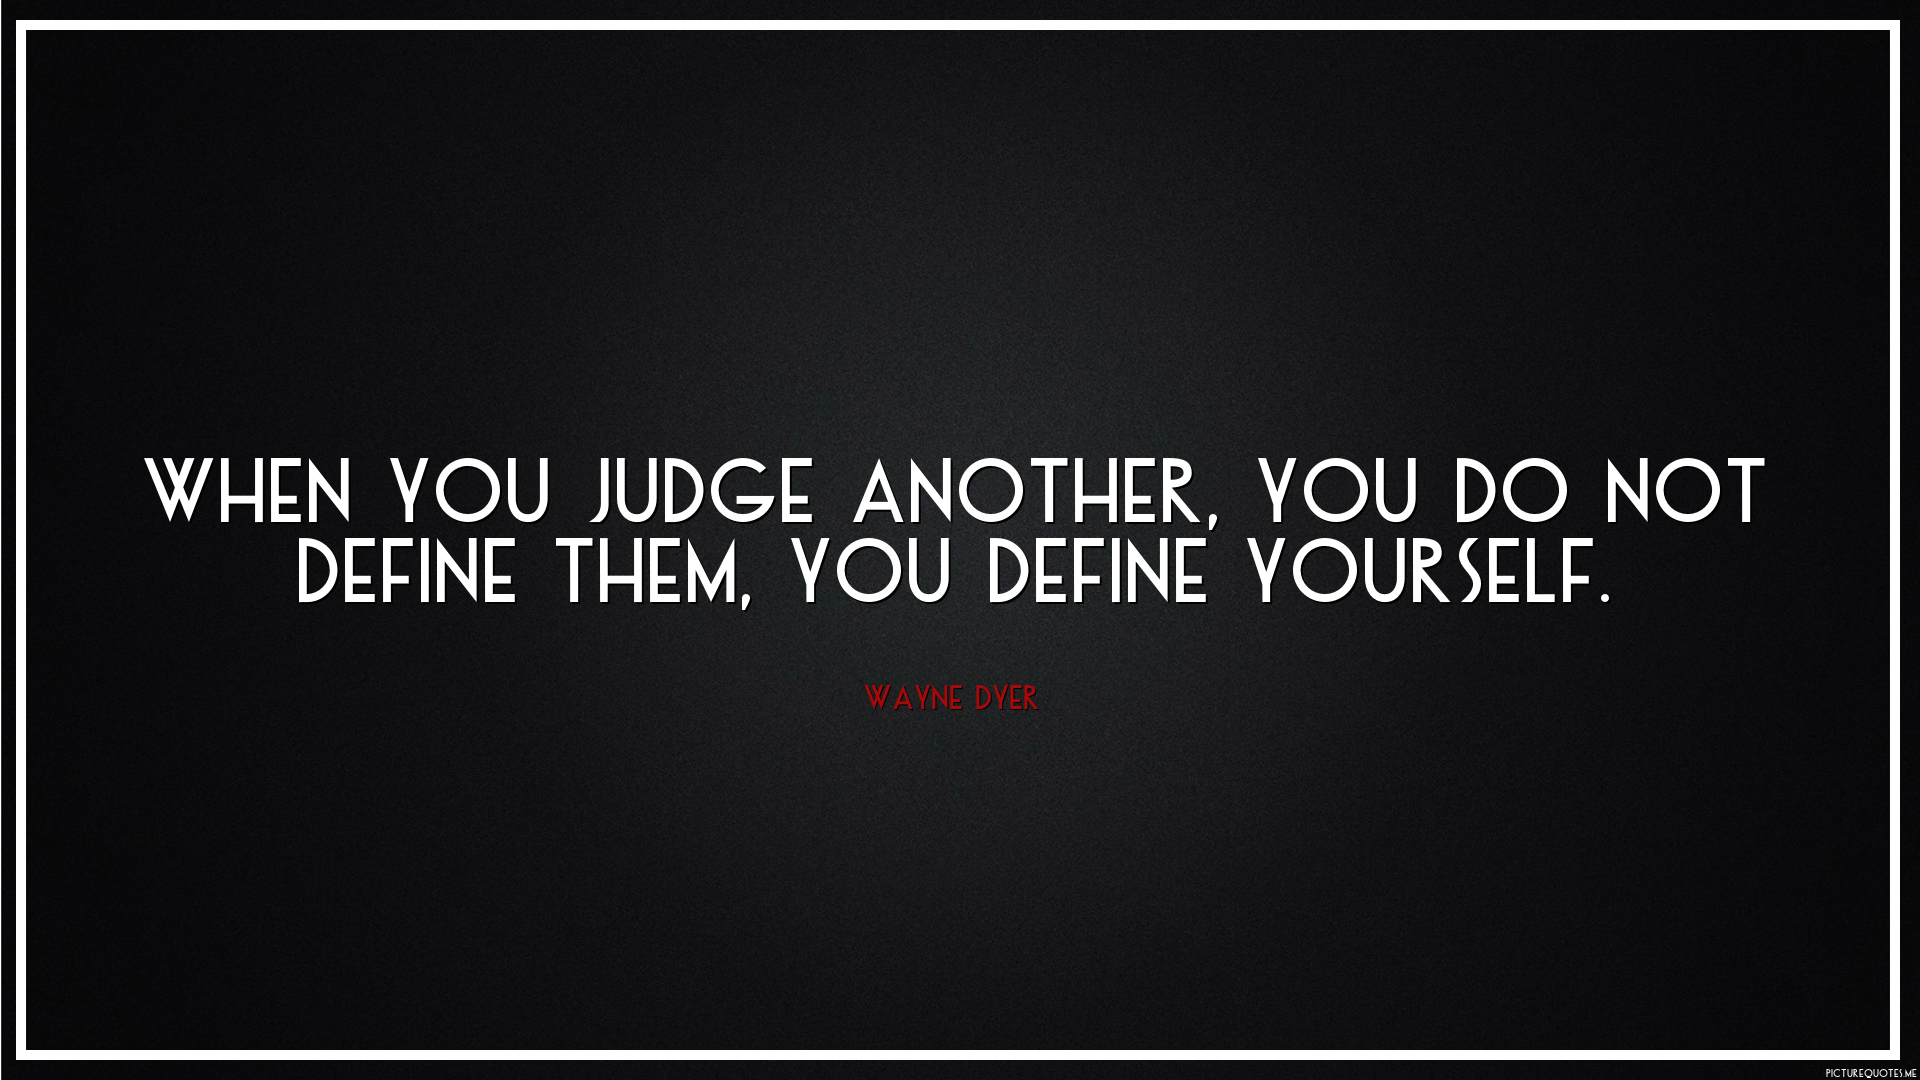 Relationships based on obligation lack dignity wayne dyer - When You Judge Another You Do Not Define Them You Define Yourself